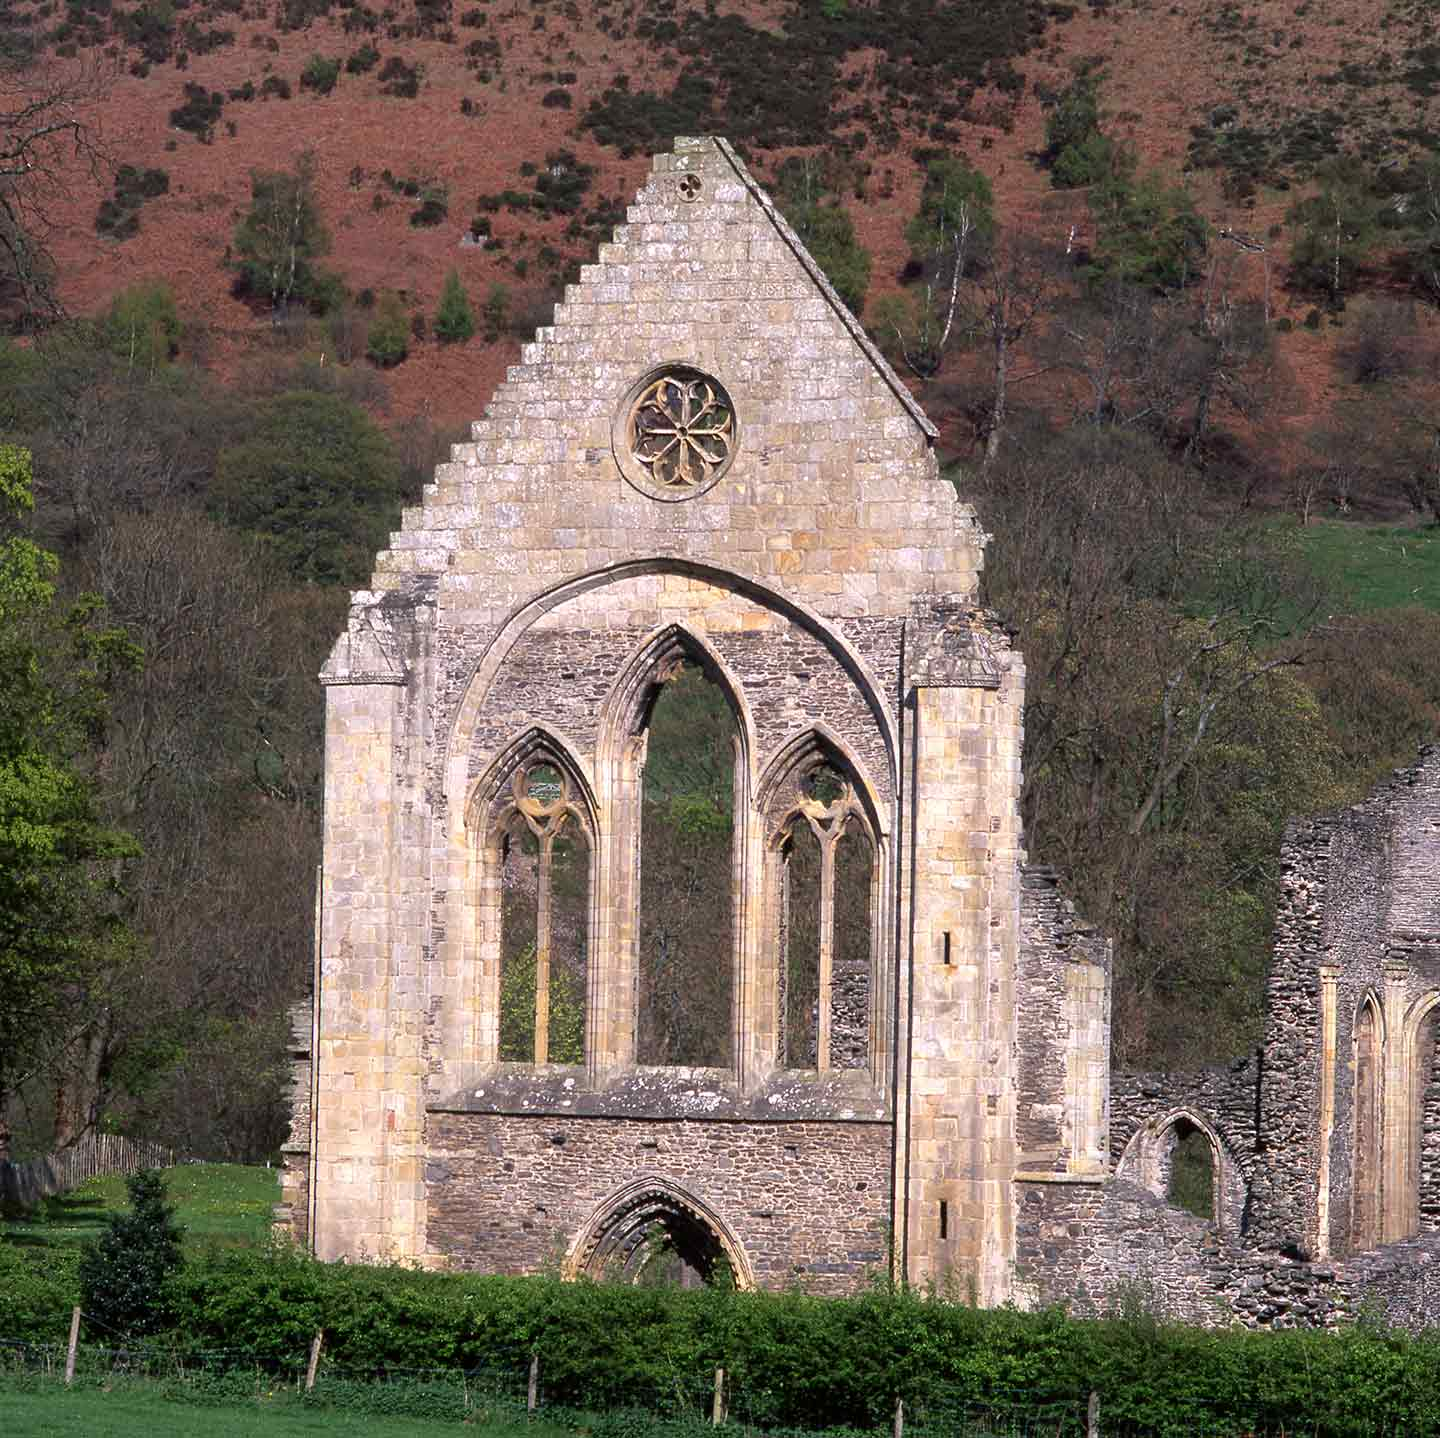 Image of the picturesque ruin of Valle Crucis Abbey, Llangollen